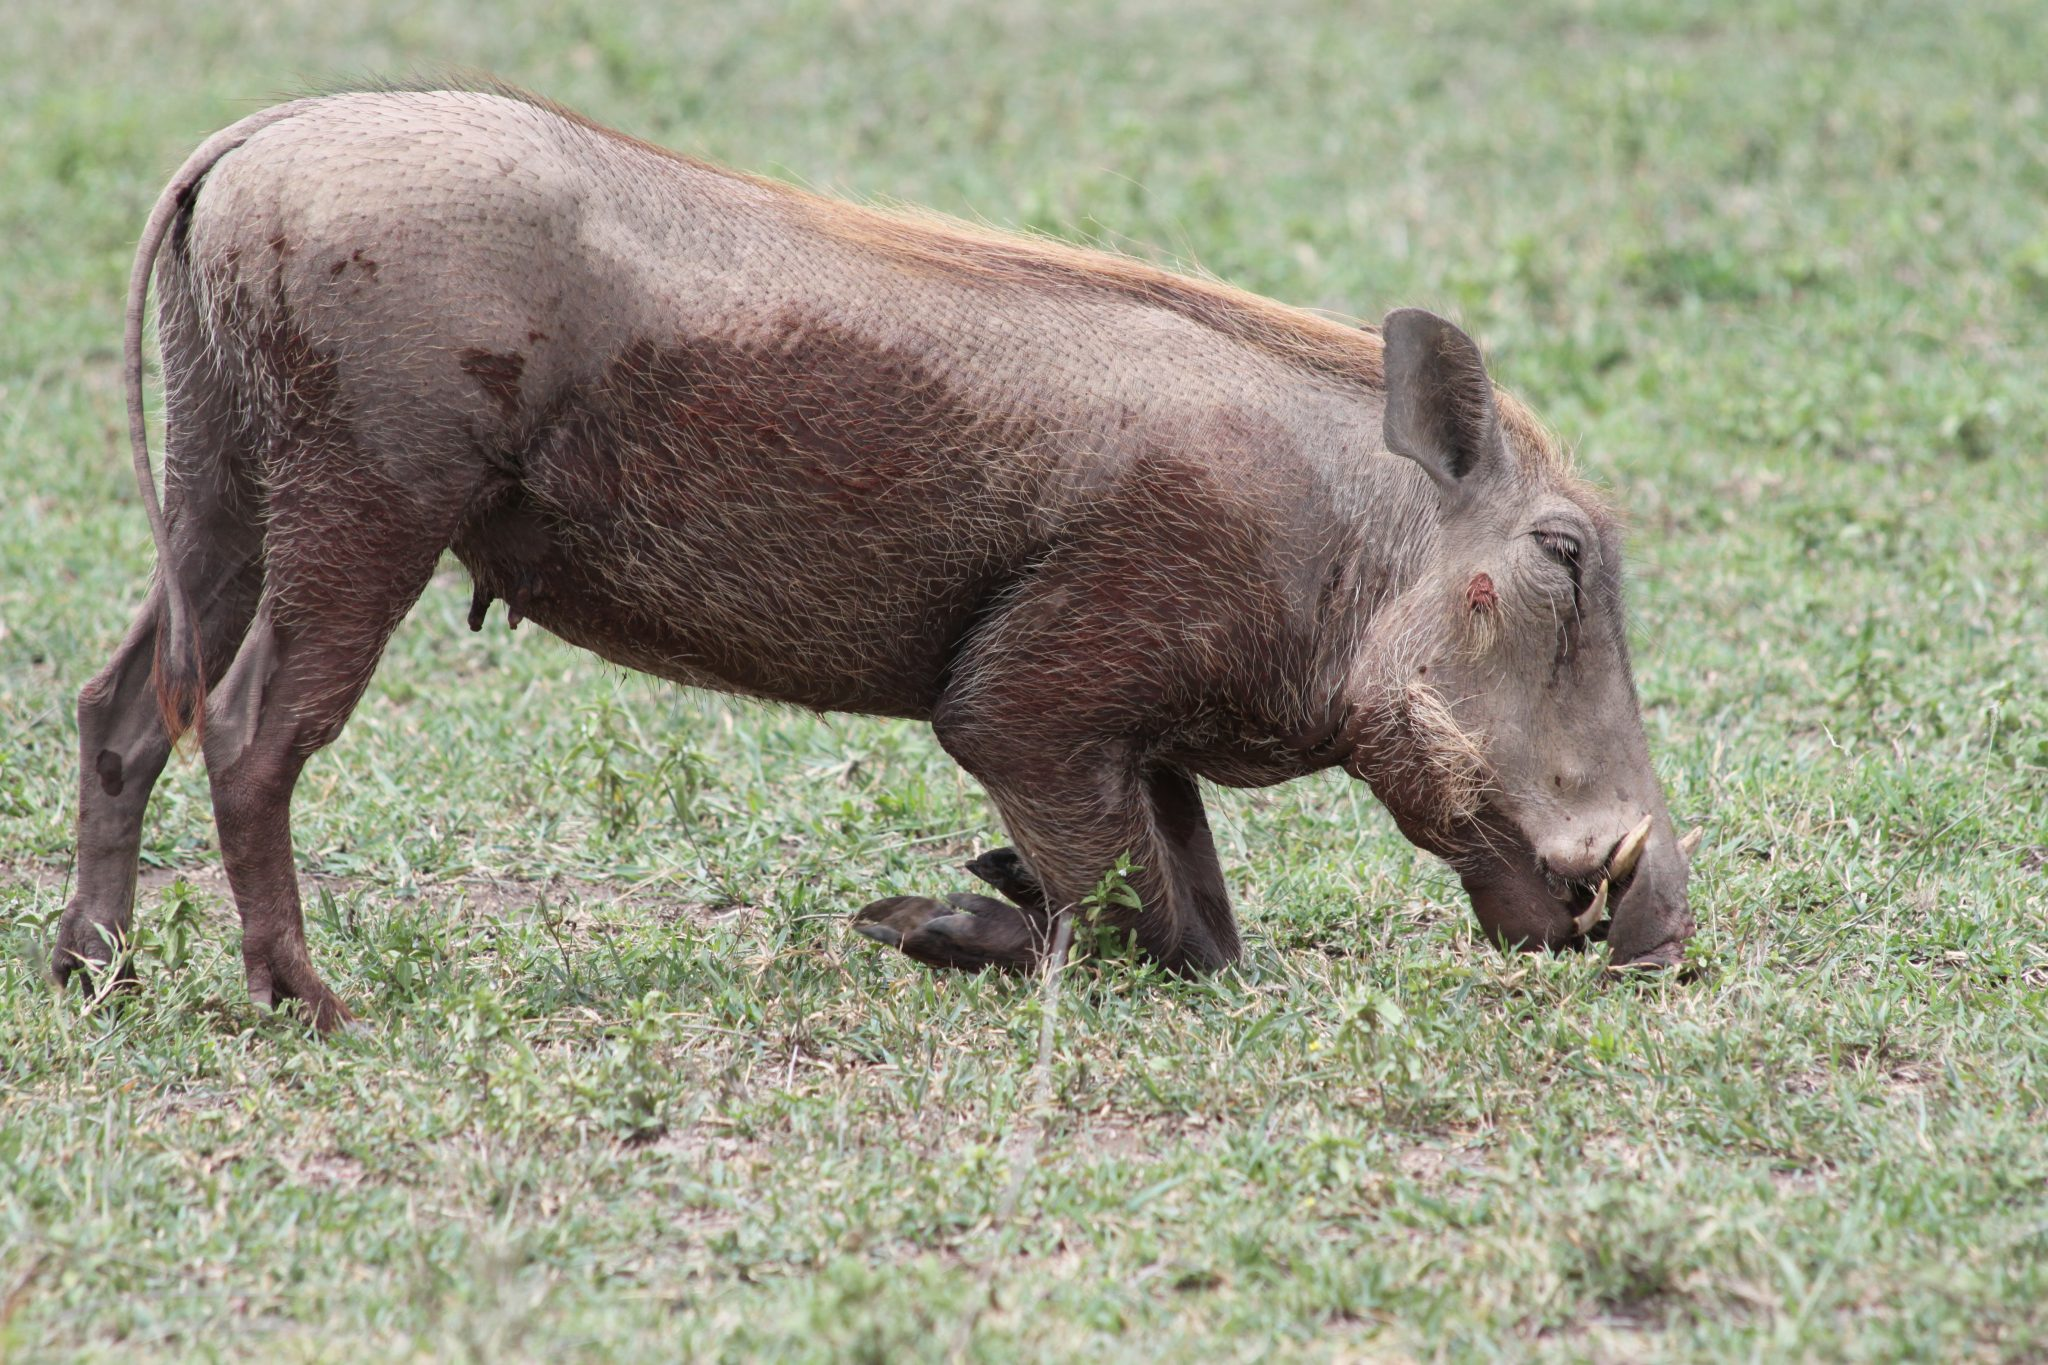 safari, Tanzania, africa, serengeti, animals, warthog